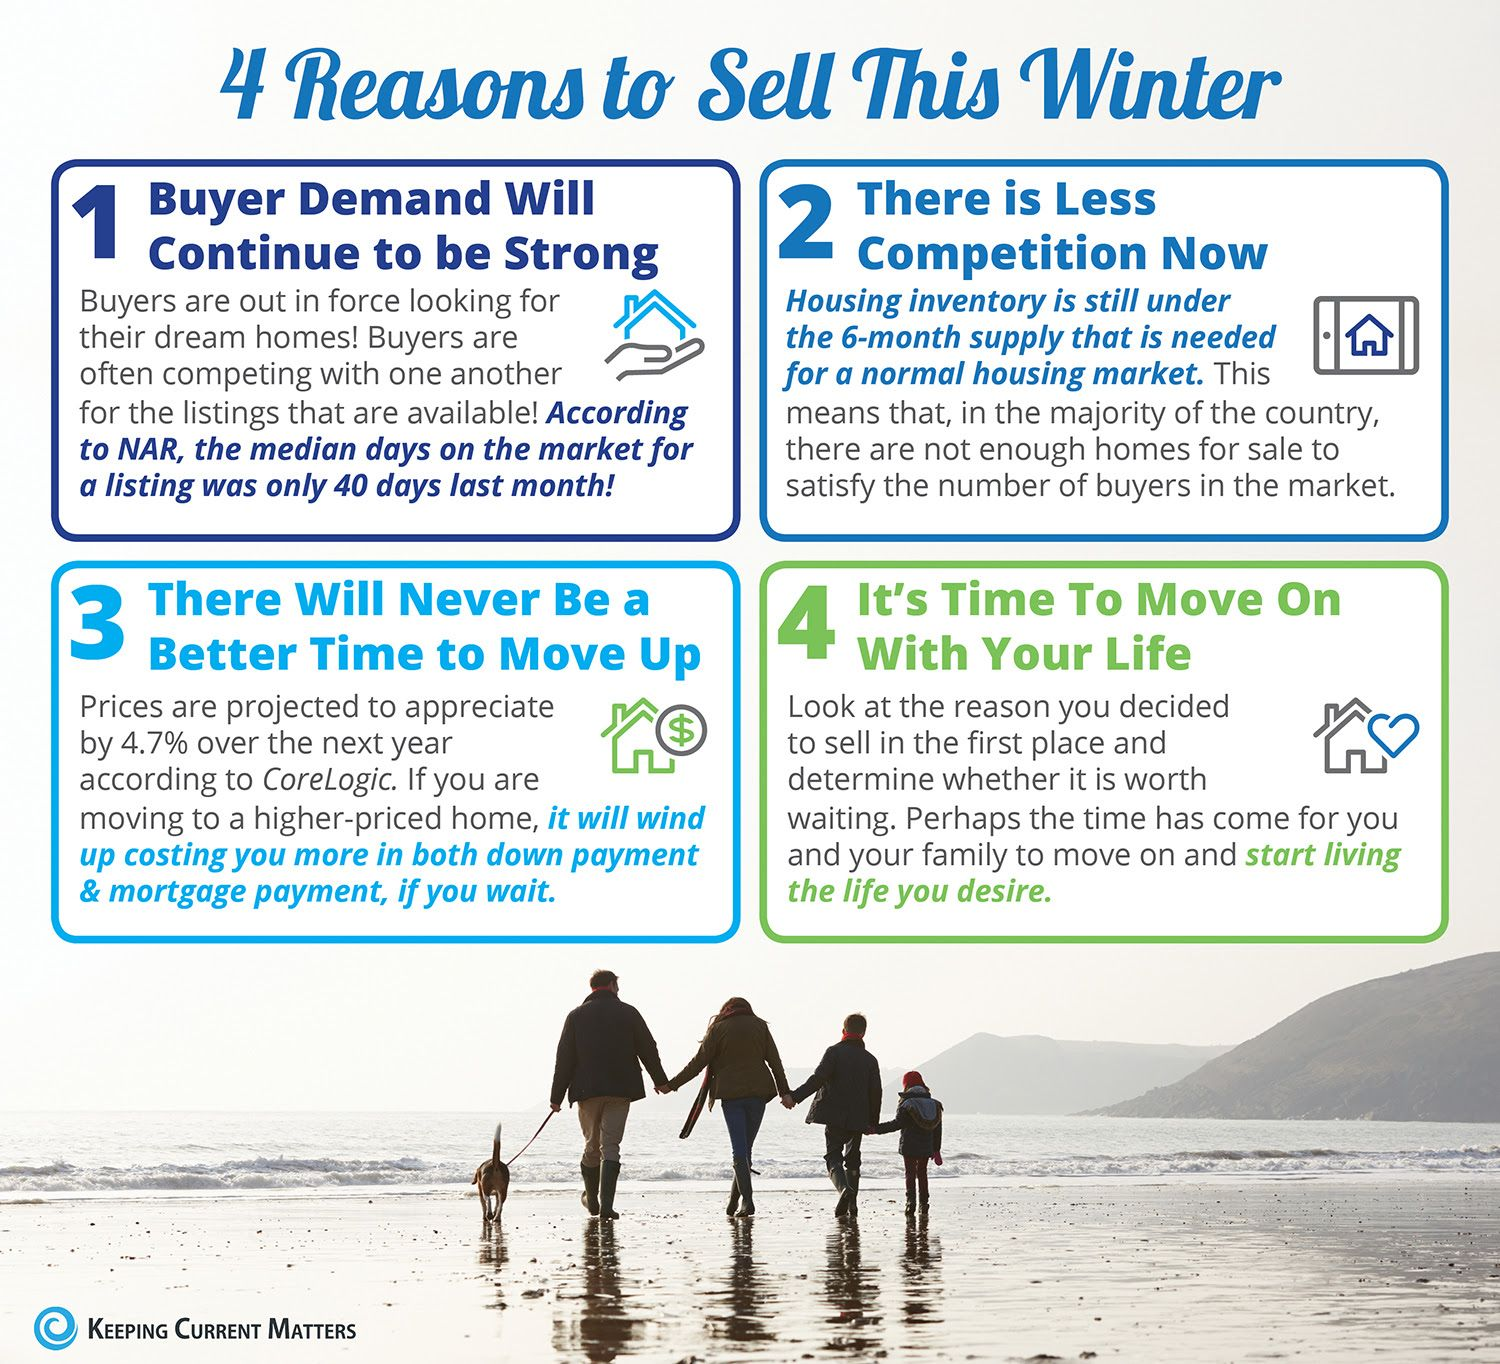 Reasons To Look Into Selling Your Home Now If You Have Any Questions Or Would Like More Information Feel Free Give Me A Call